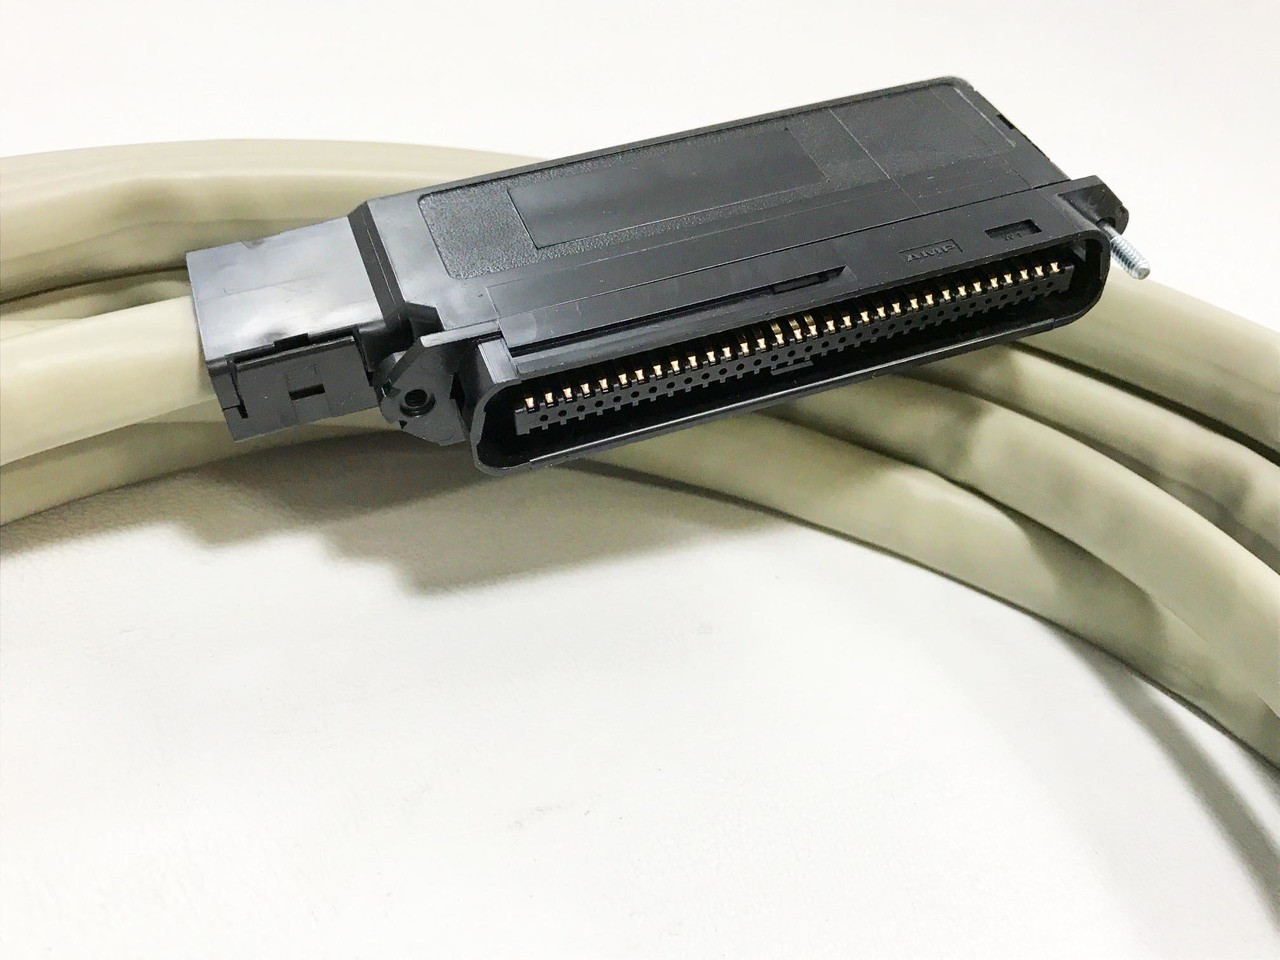 1200287l1 and 1200287l2 25 64 pin amphenol to wire cable equivalent to  [ 1280 x 960 Pixel ]